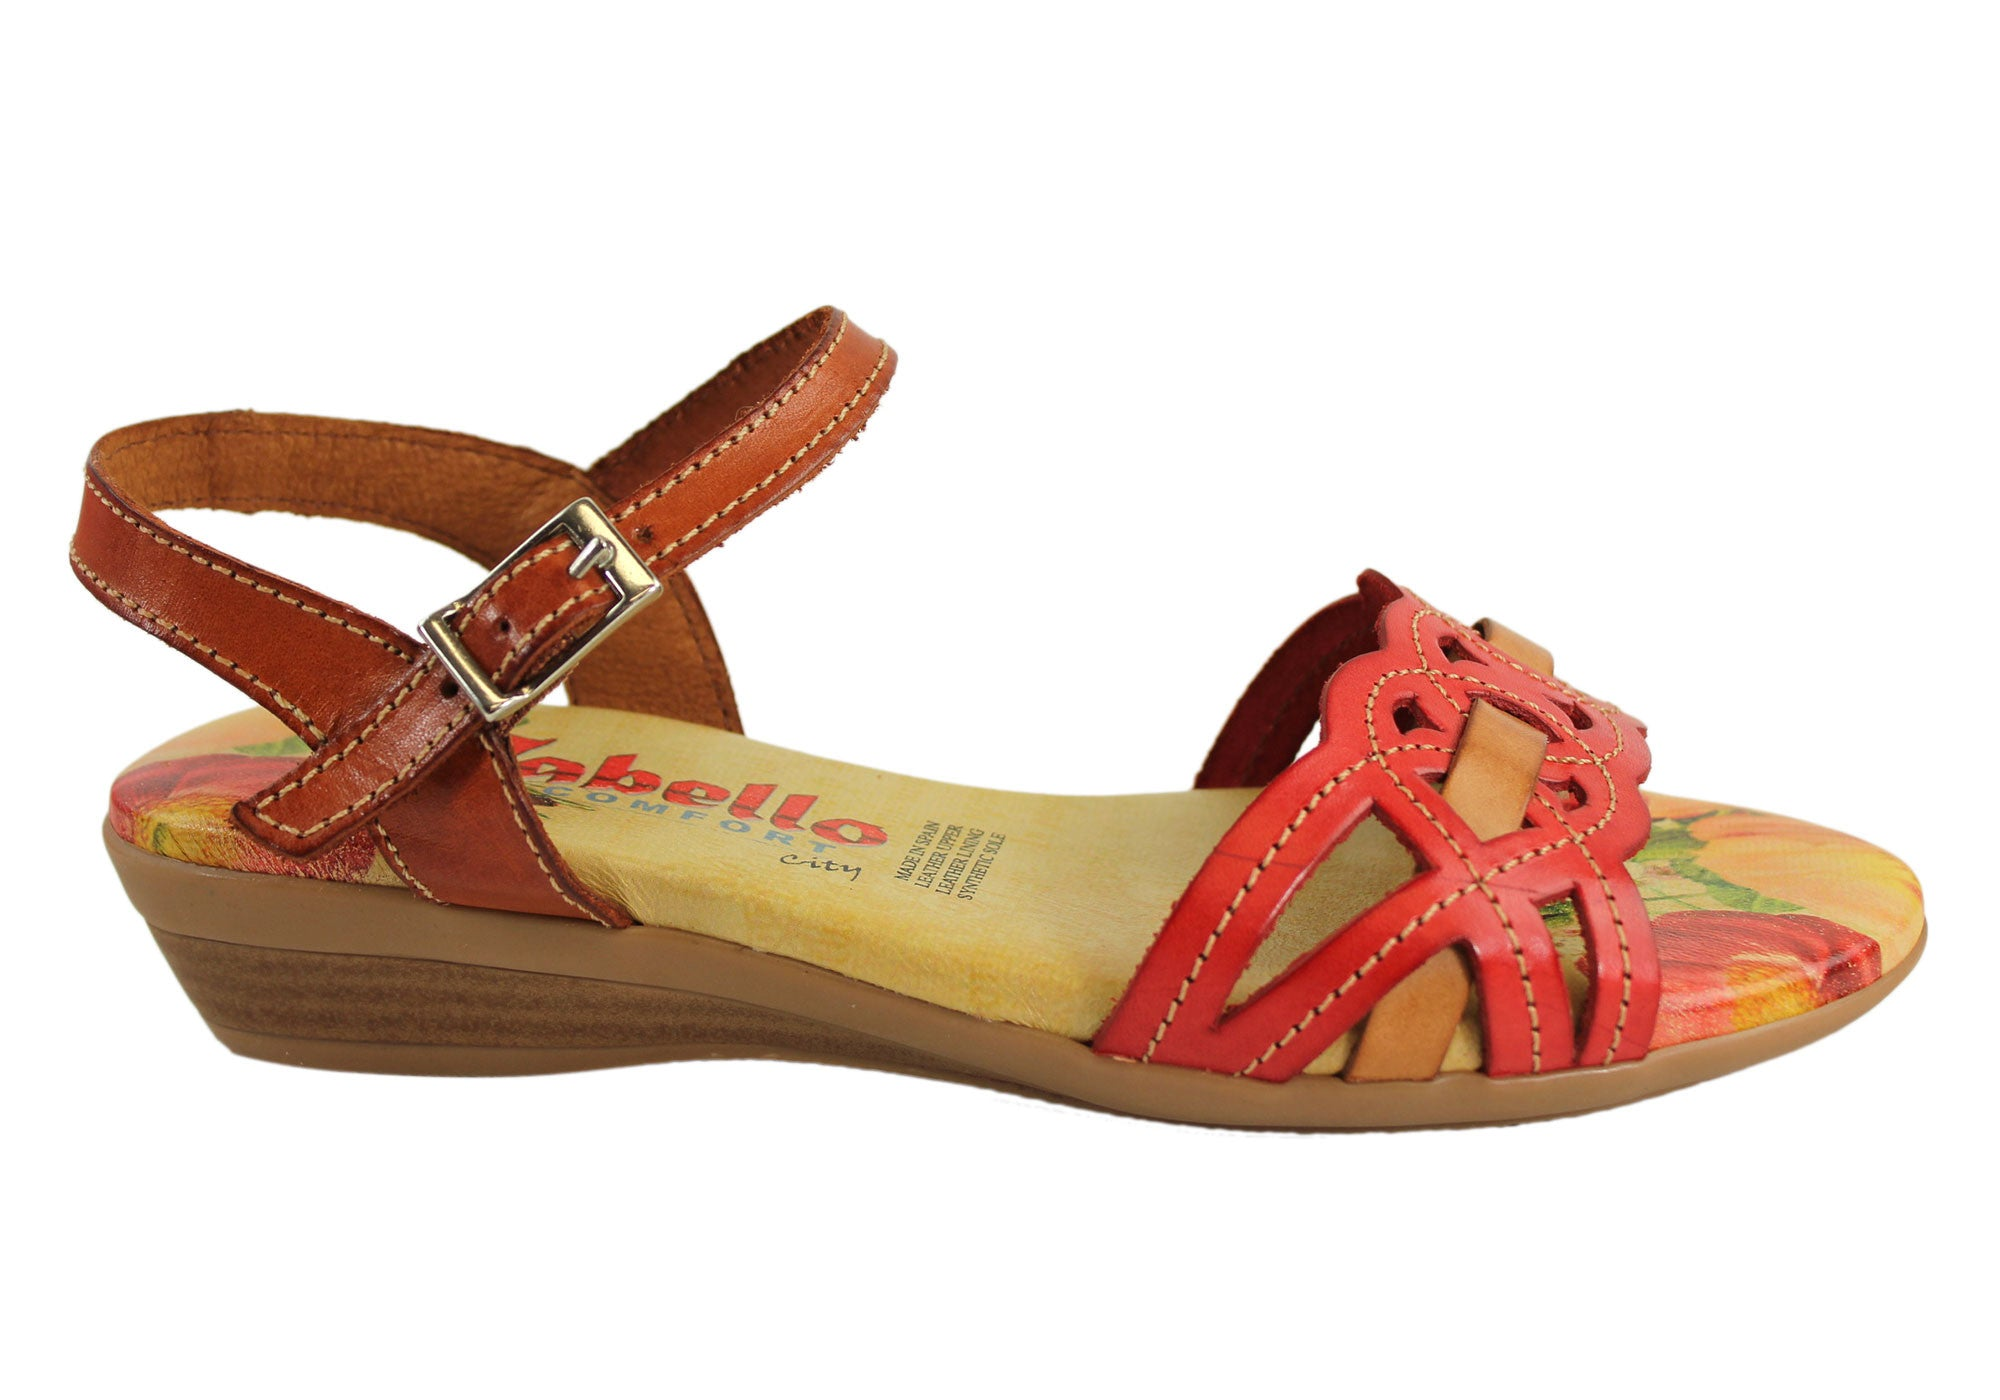 5c3abaf36ab Cabello Comfort 2027 Womens Leather Low Wedge Sandals Made In Spain ...